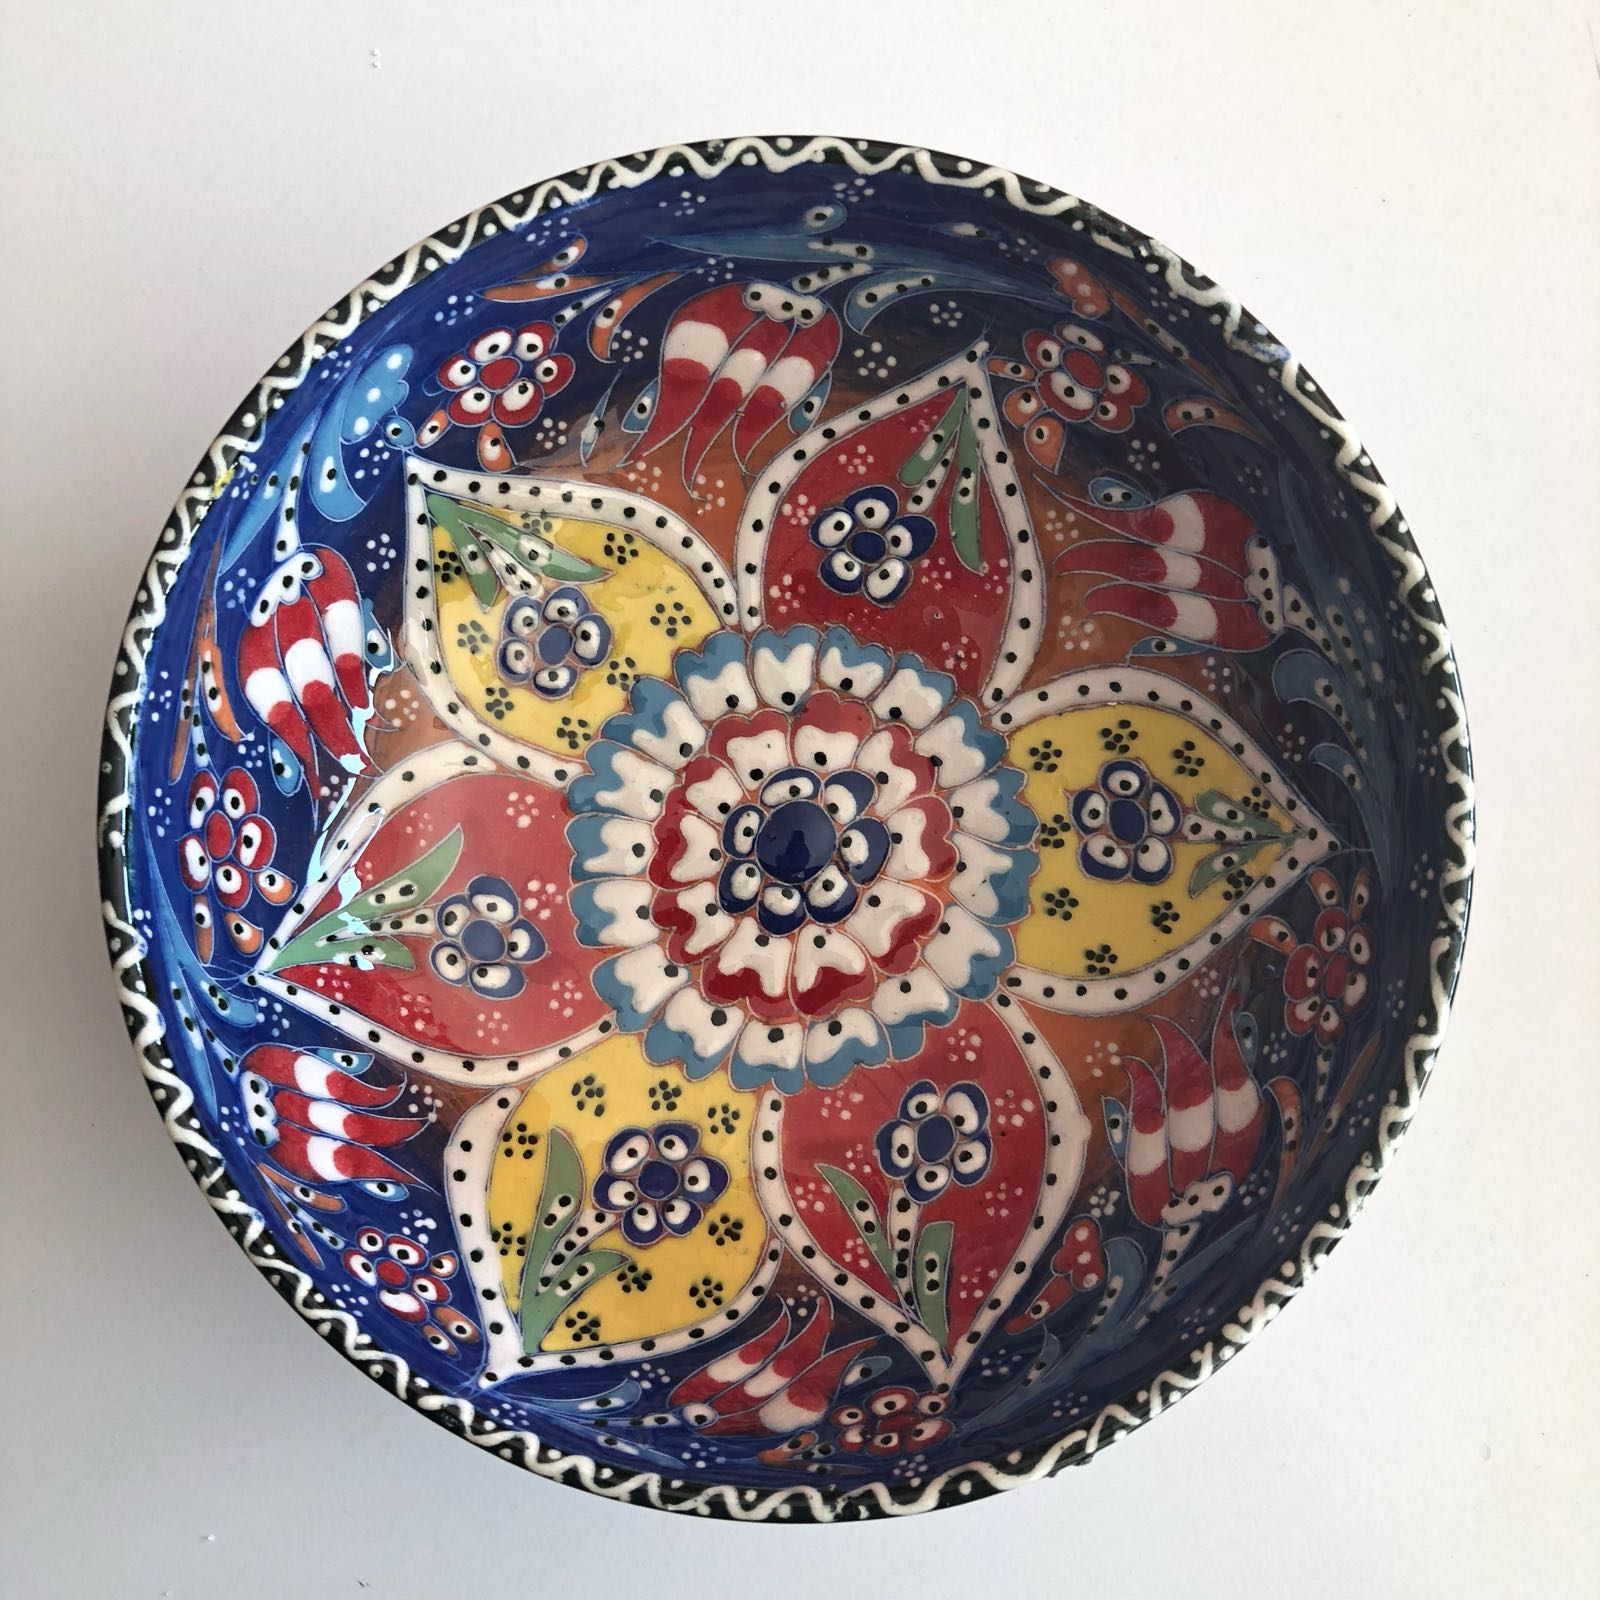 Hand Painted Bowls From Turkey